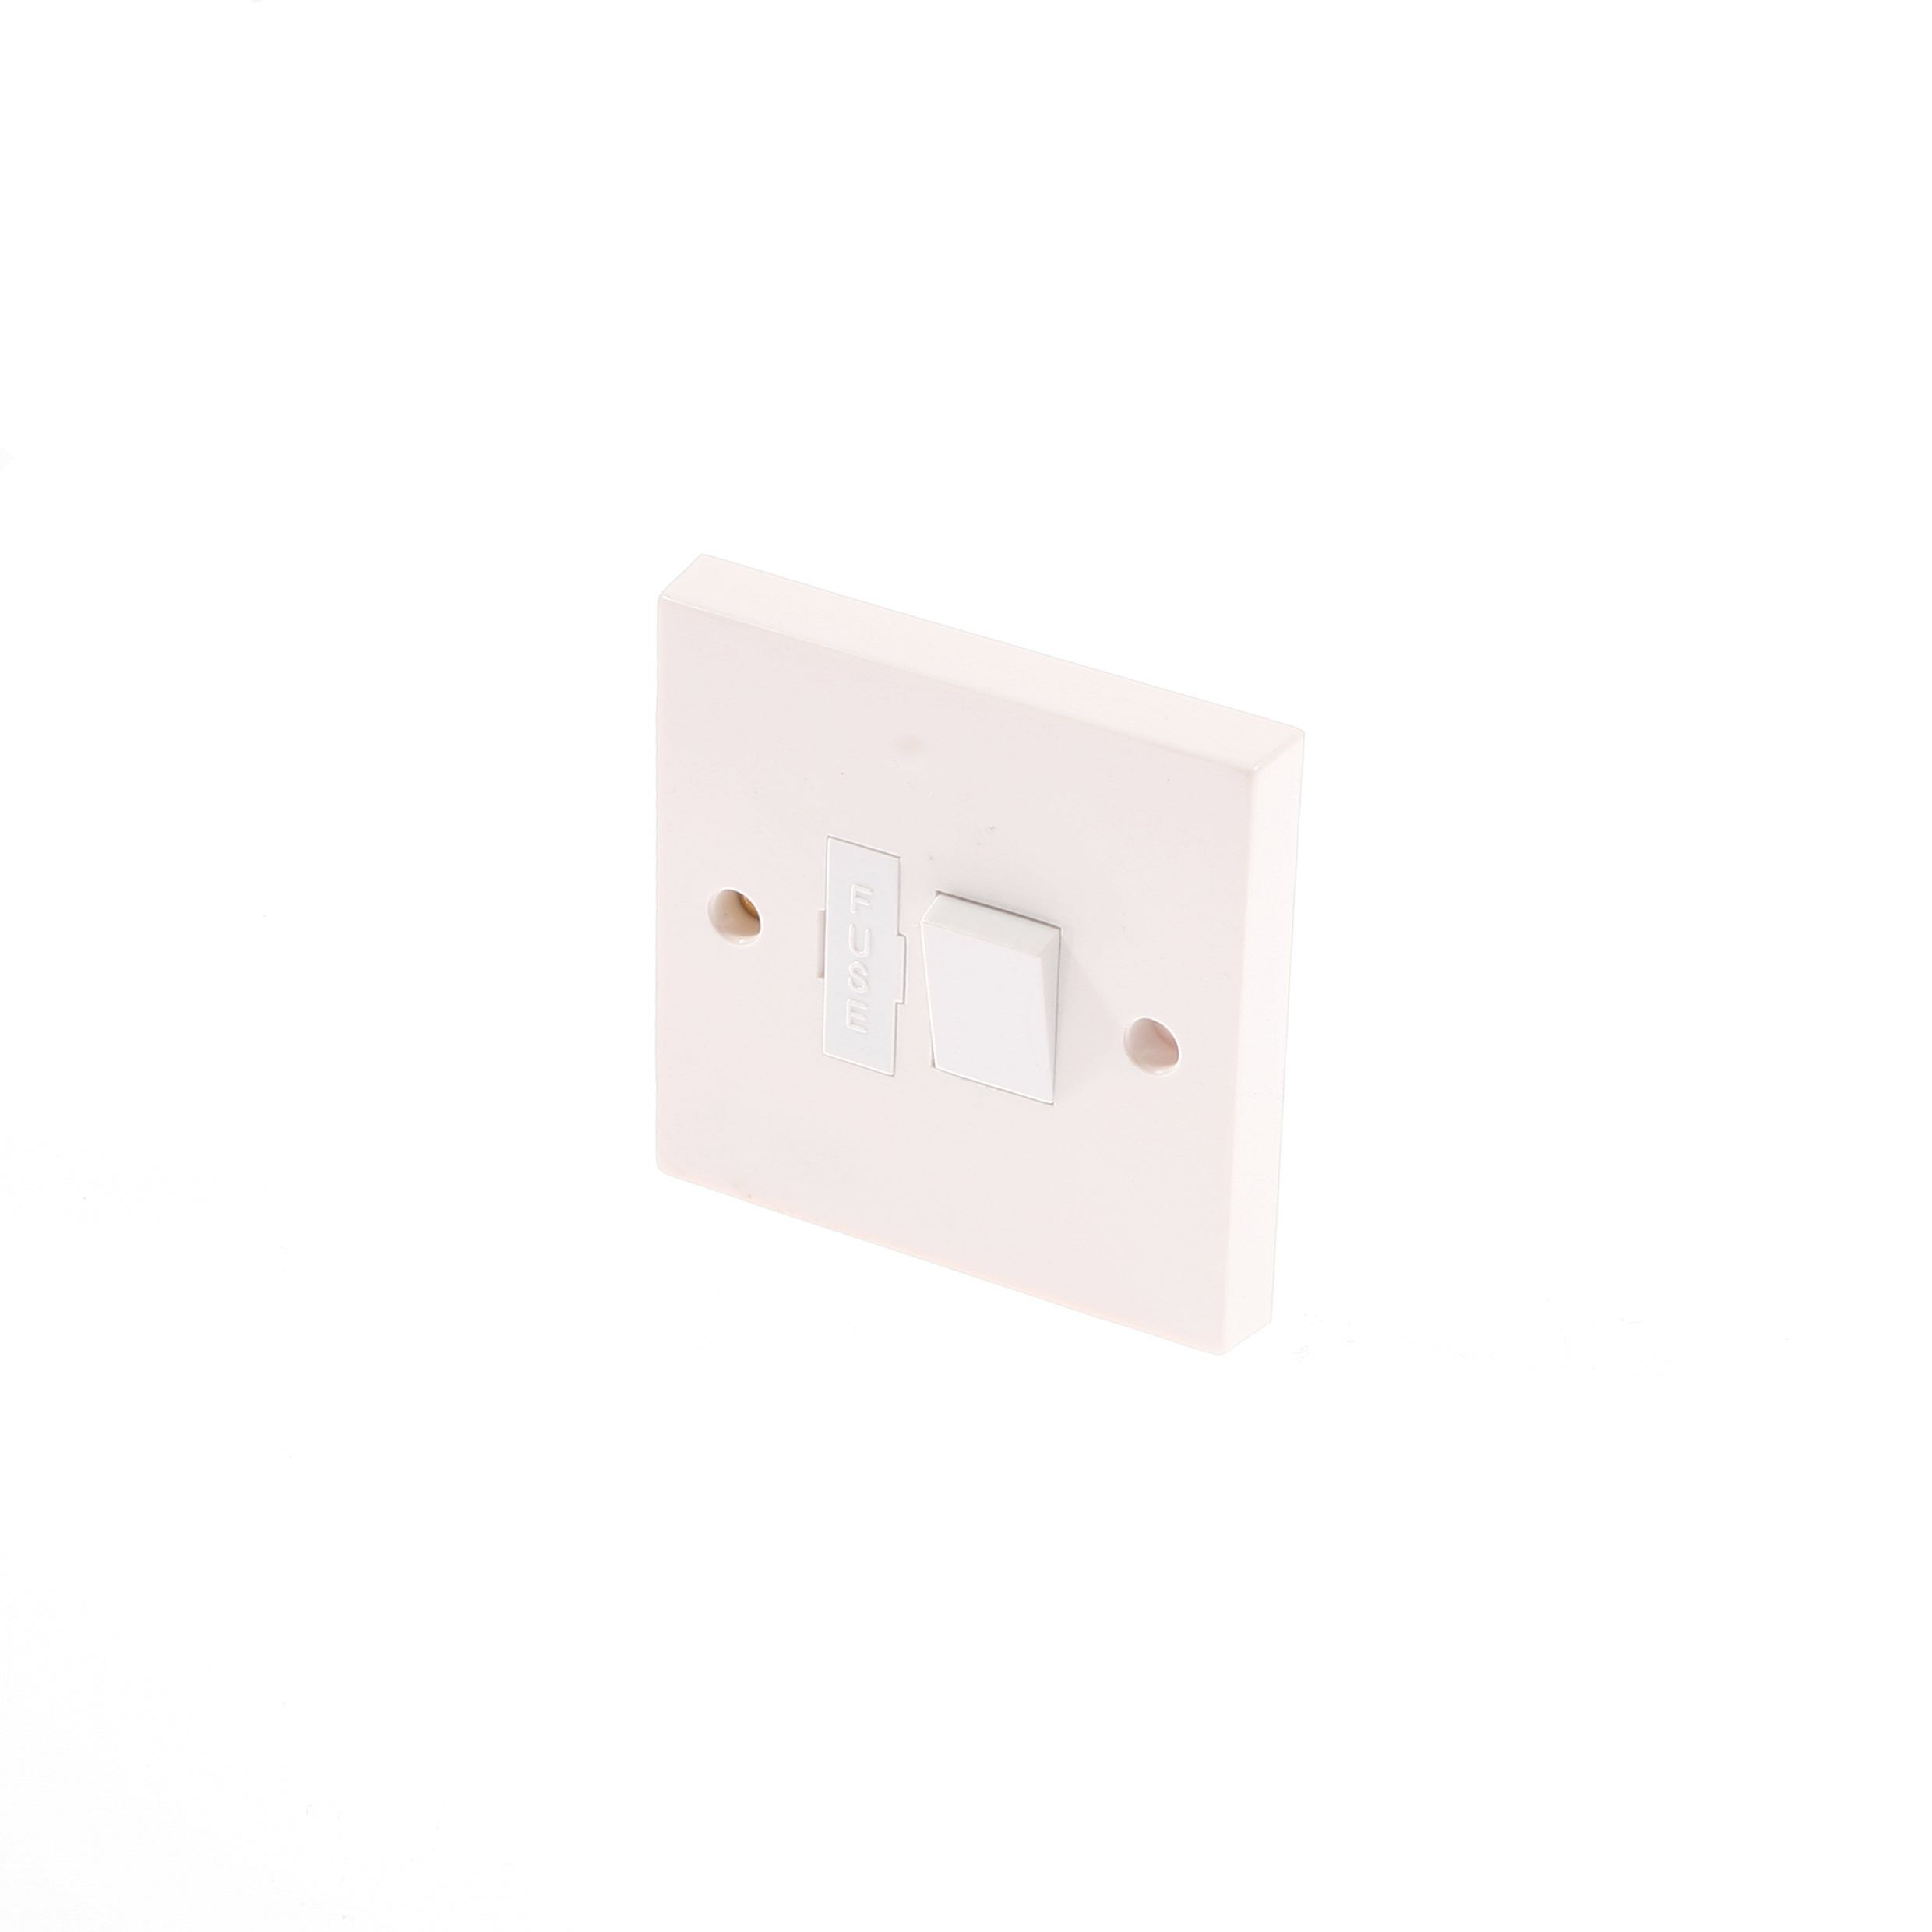 For use with Keep your home safe for your child with these Socket covers by SMJ